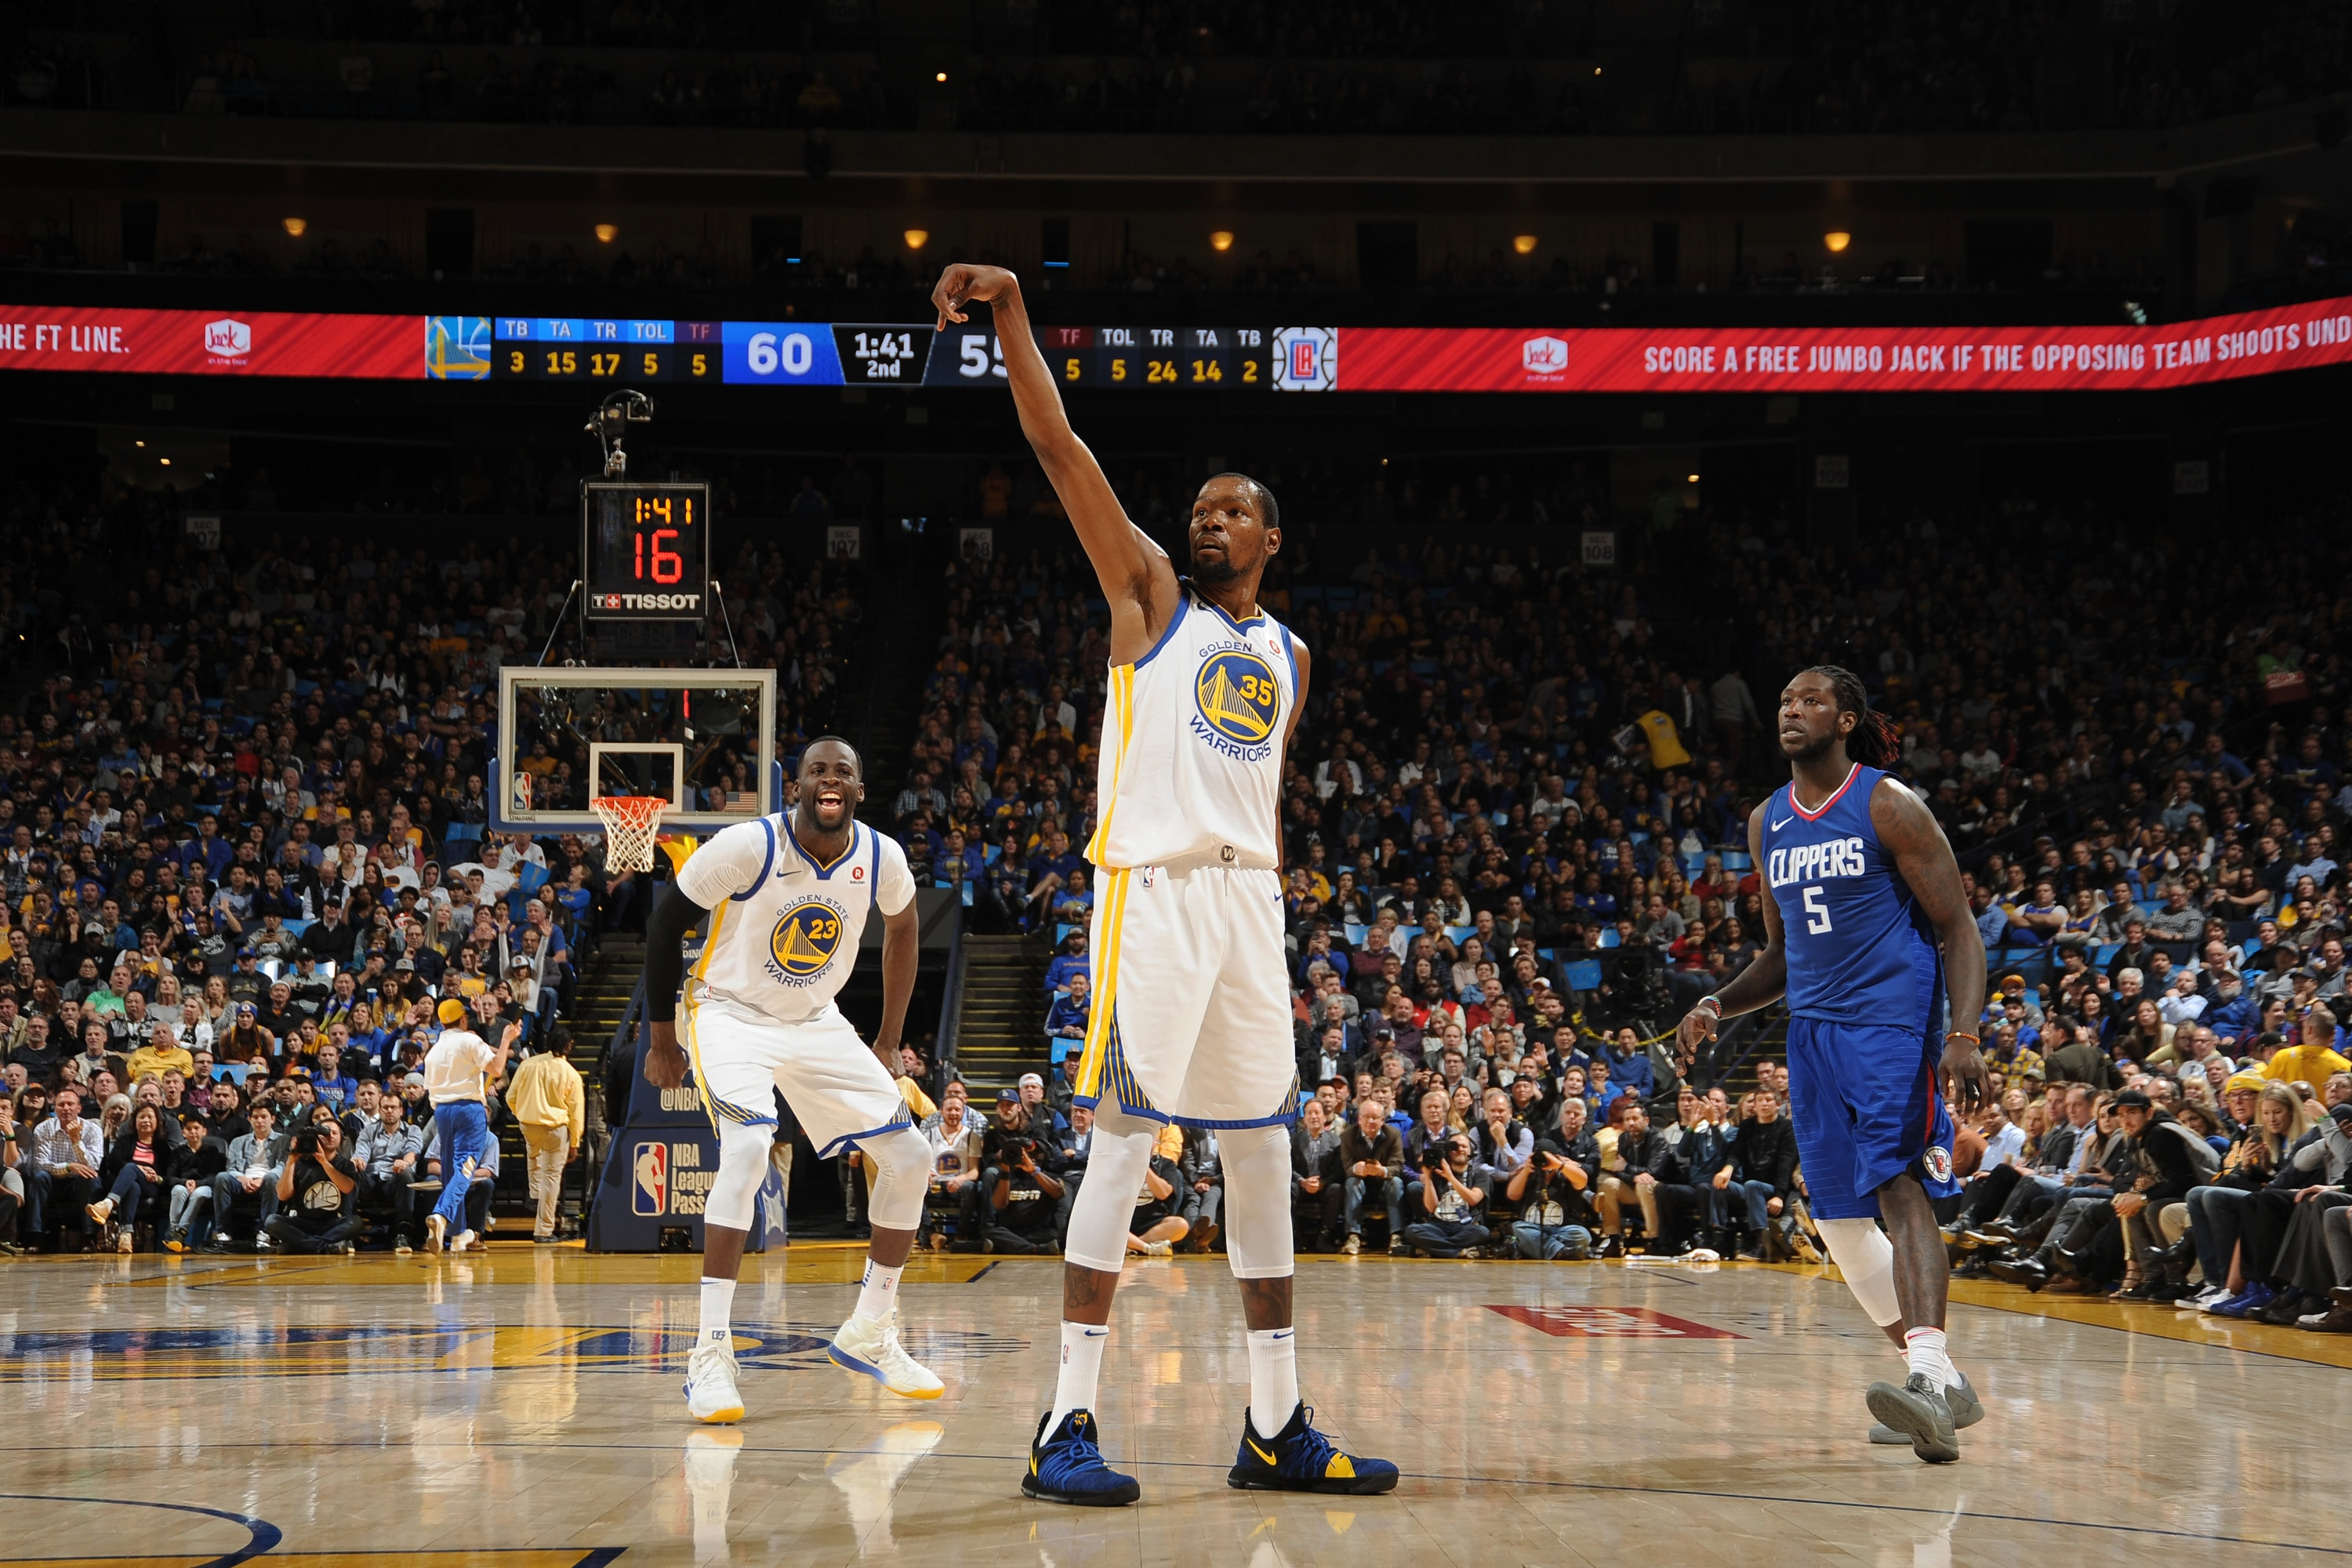 Durant reaches 20,000 career points